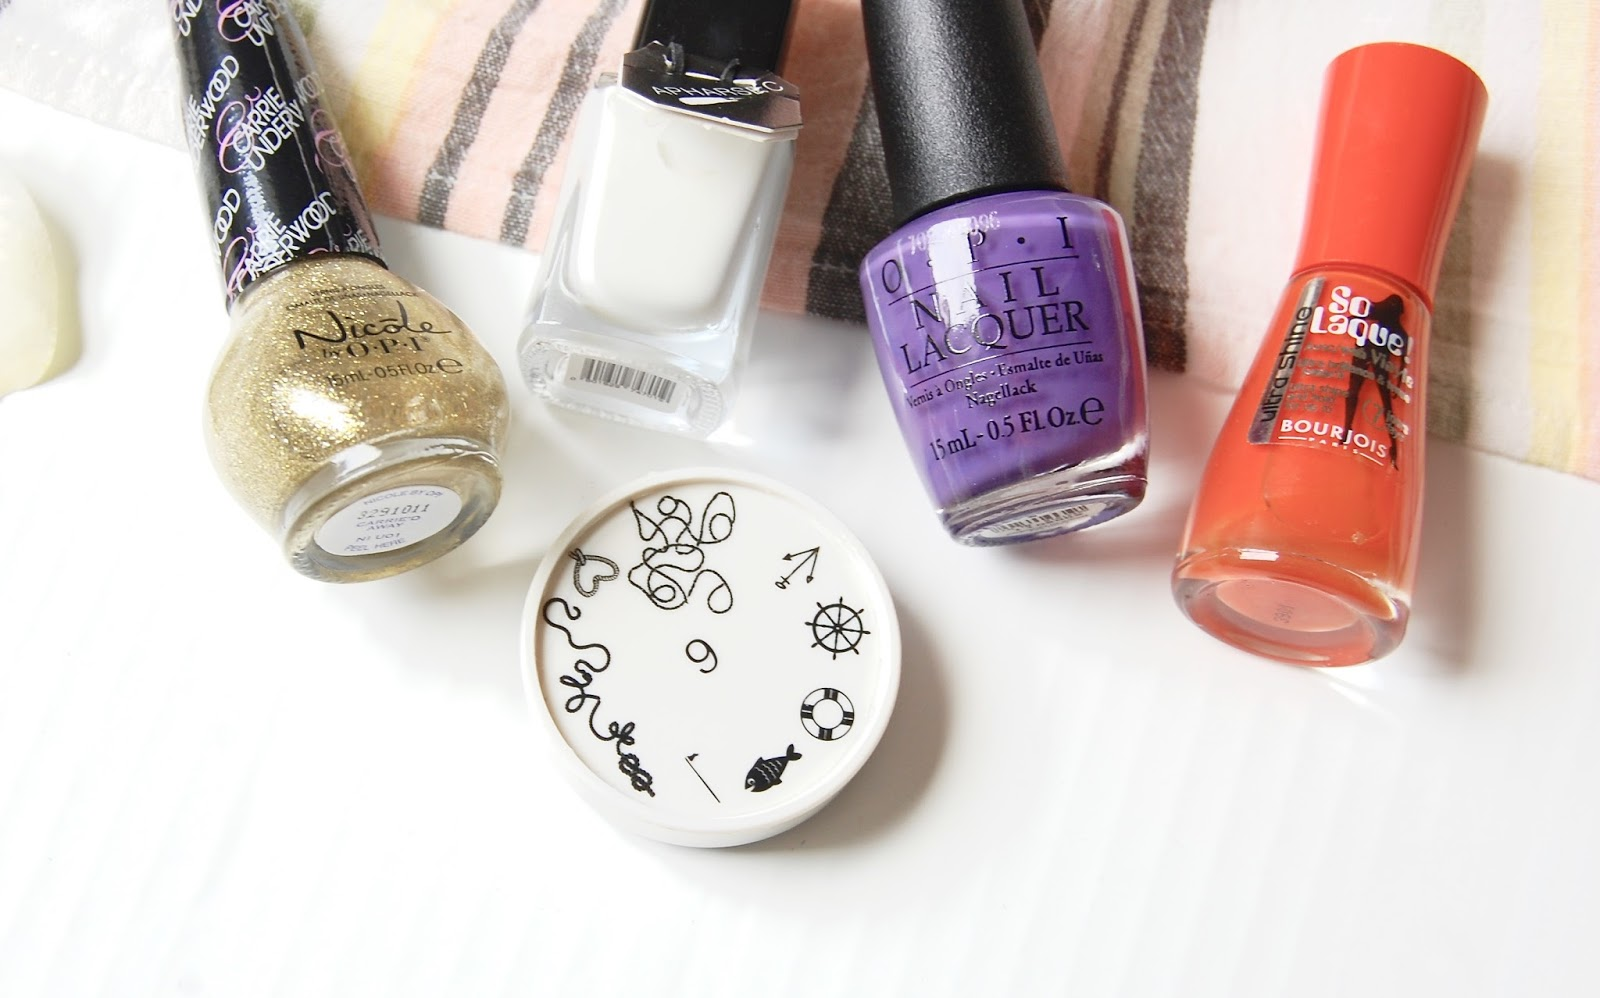 See what I got in my August Nailbox subscription